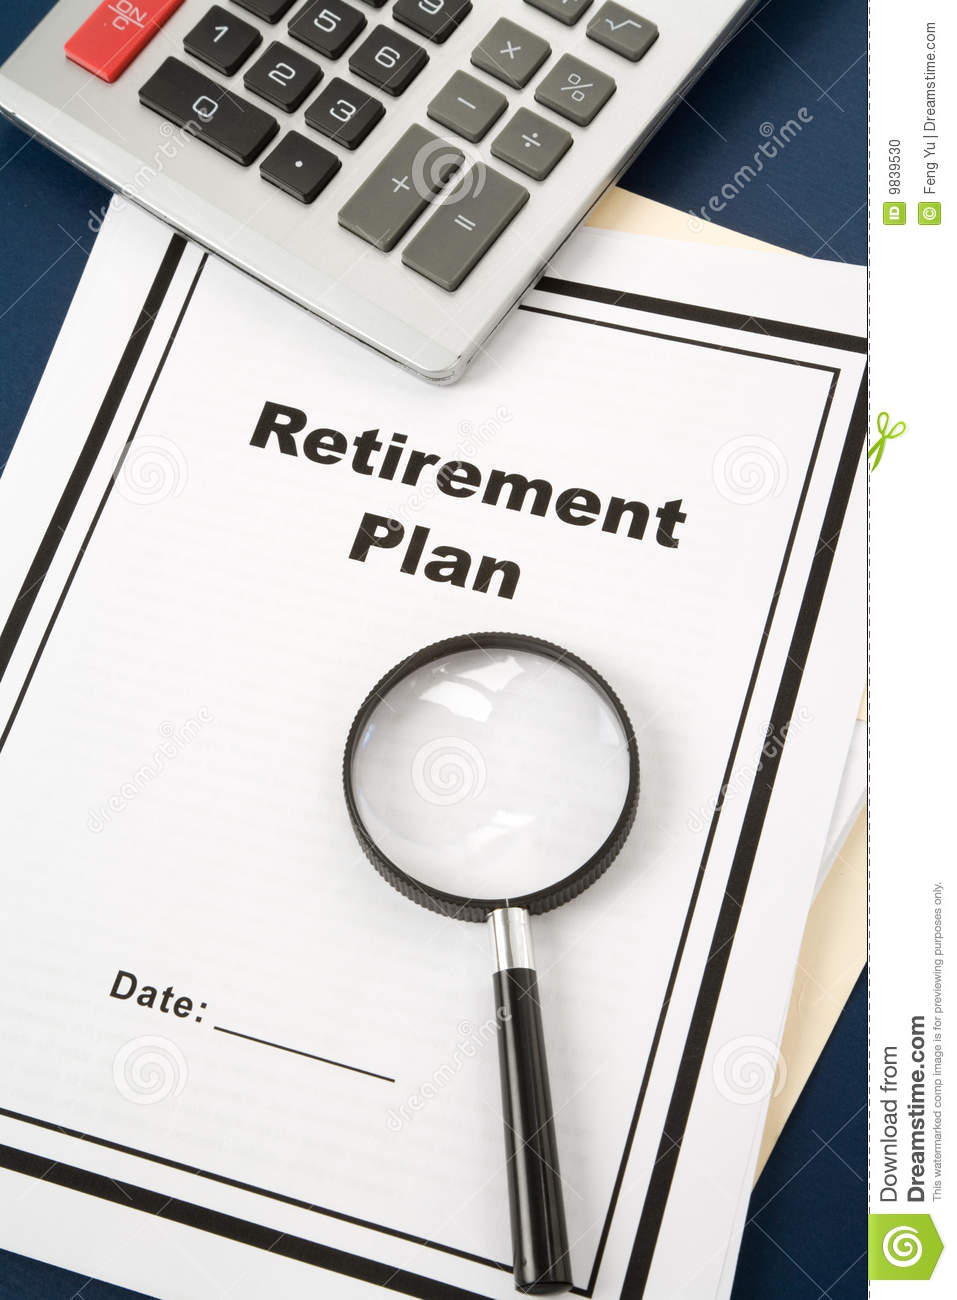 Retirement Plan Loan Liability Tax Form Concept Royalty Free Stock Photography Cartoondealer